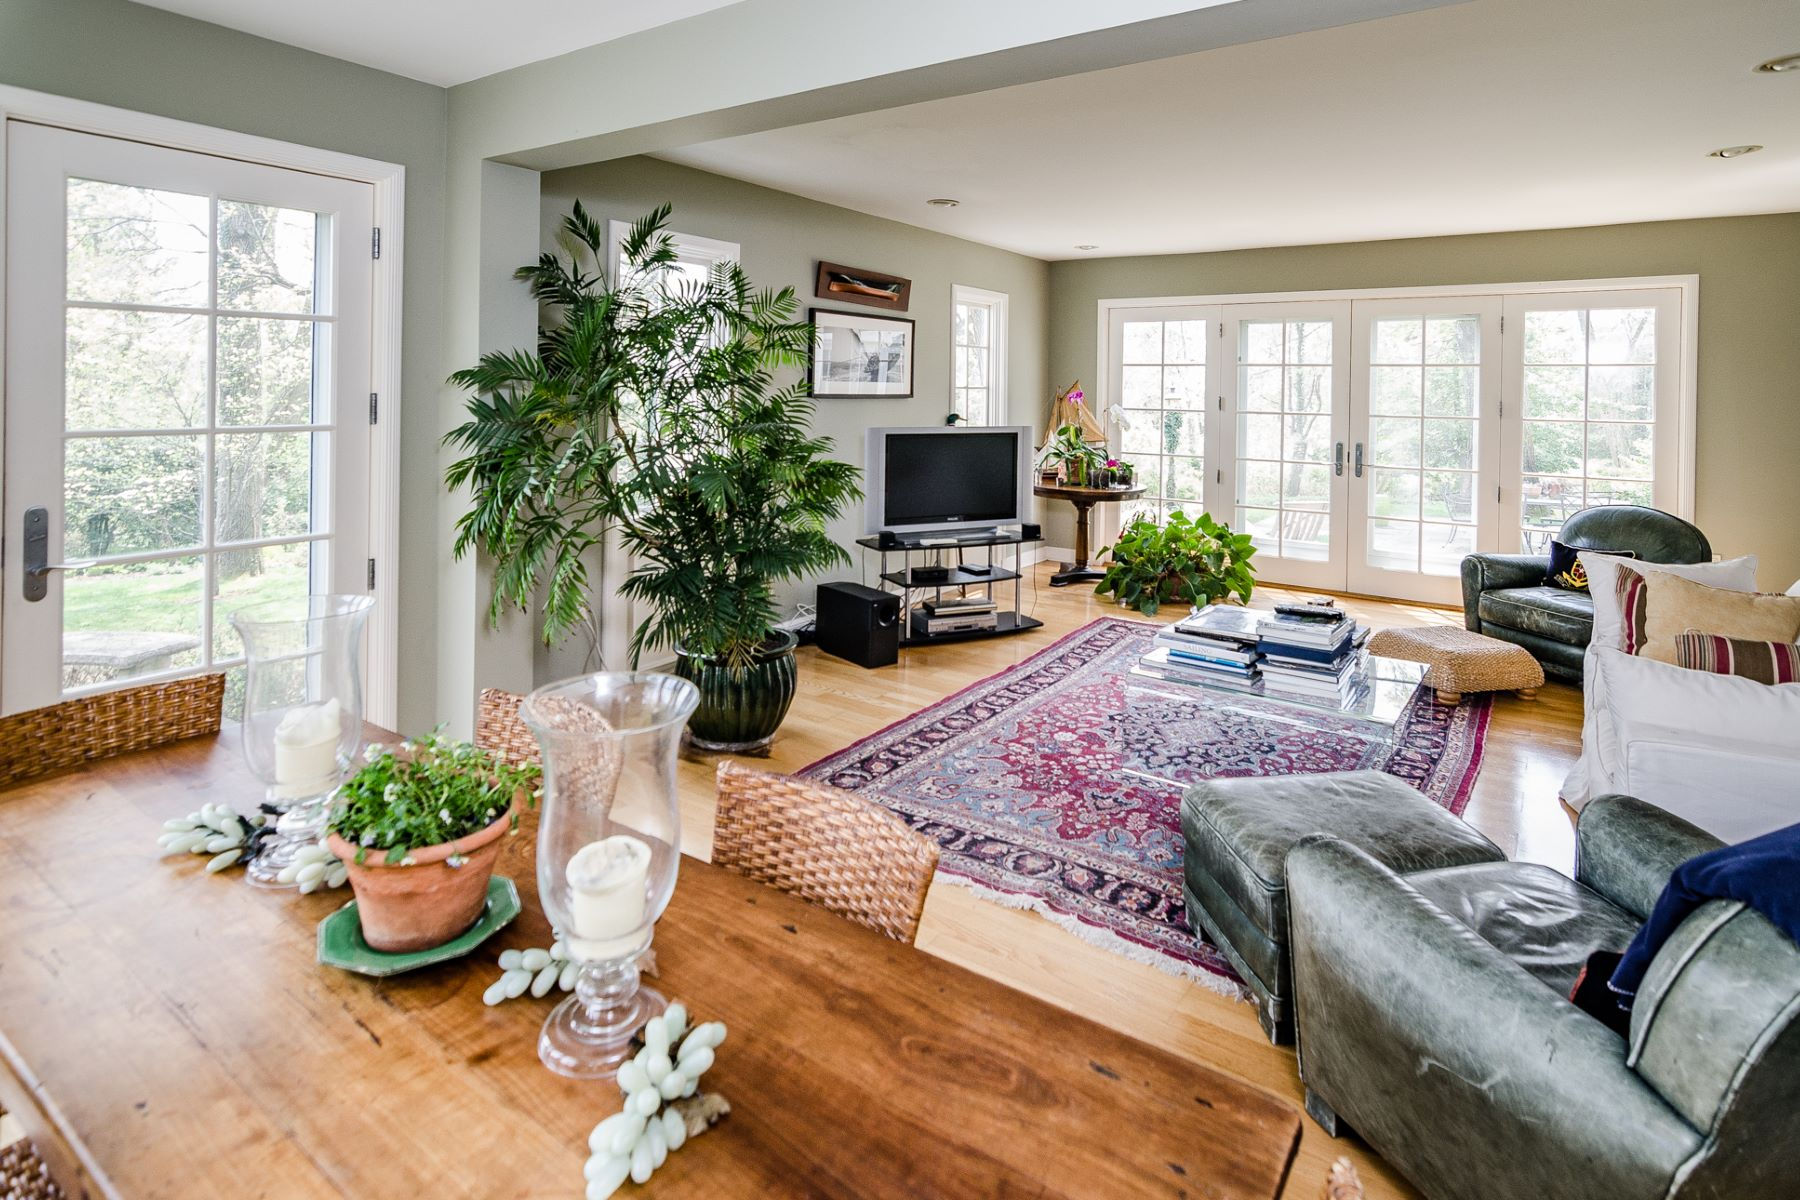 Additional photo for property listing at Distinguished Institute Home with Terraced Gardens 96 Battle Road, Princeton, New Jersey 08540 United States